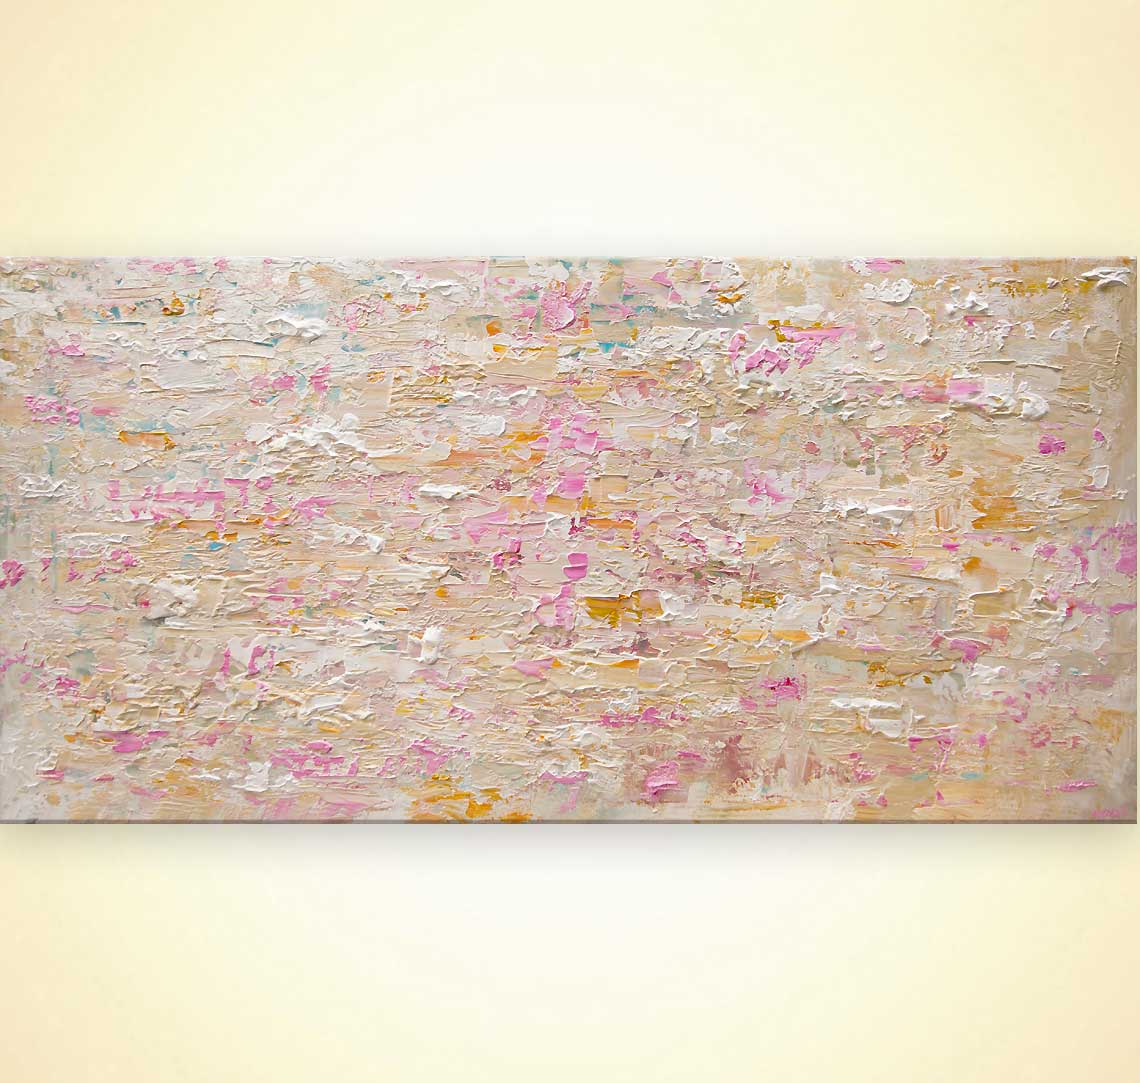 big textured soft abstract painting